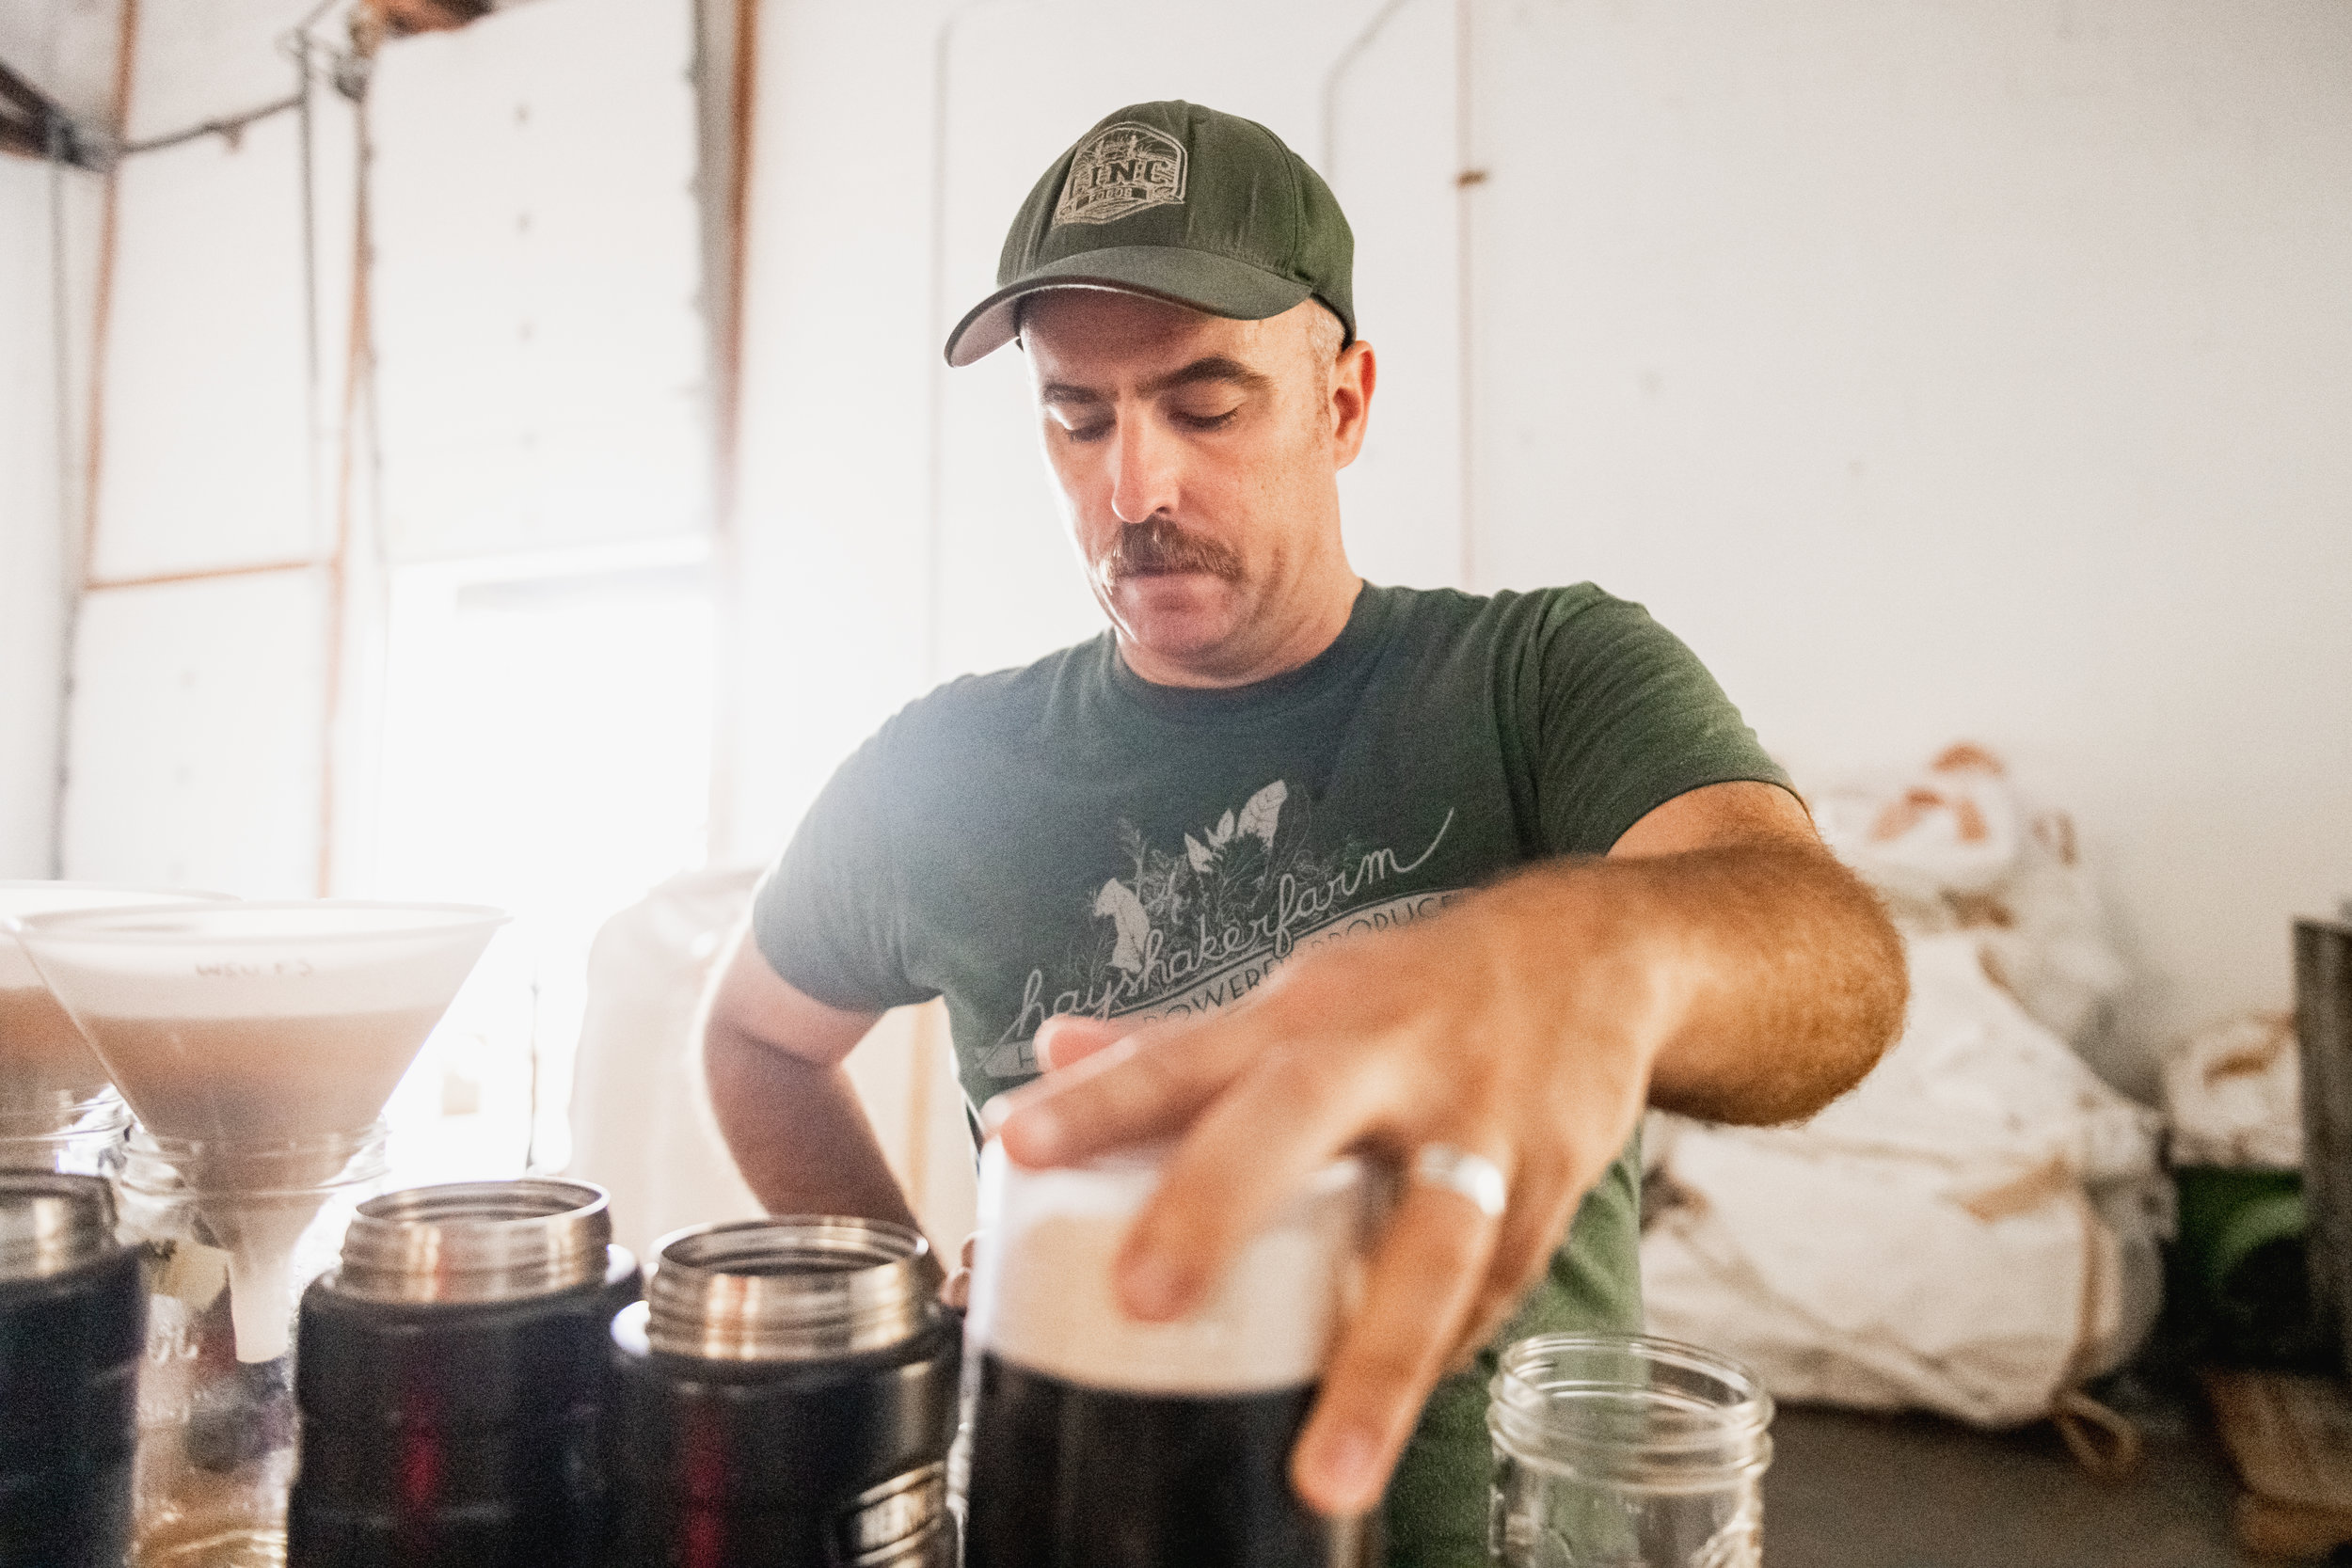 Tasting craft malt differences in a hot steep or wort